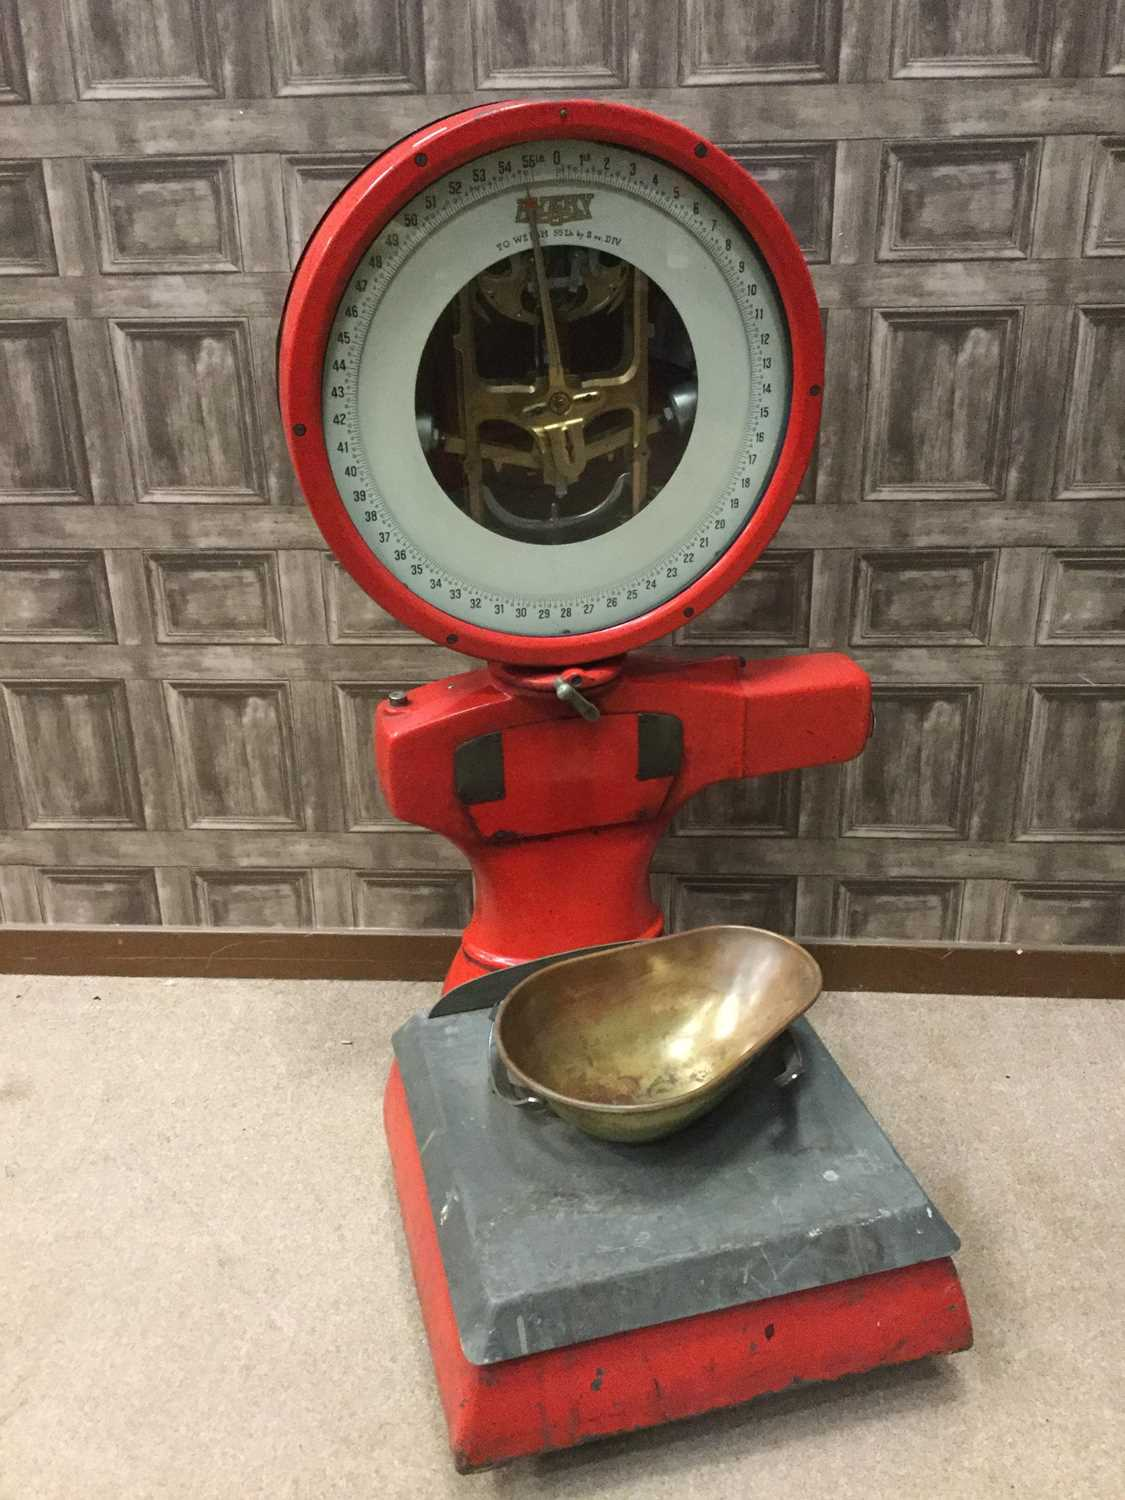 Lot 1399 - A SET OF 1930s AVERY WEIGHING SCALES